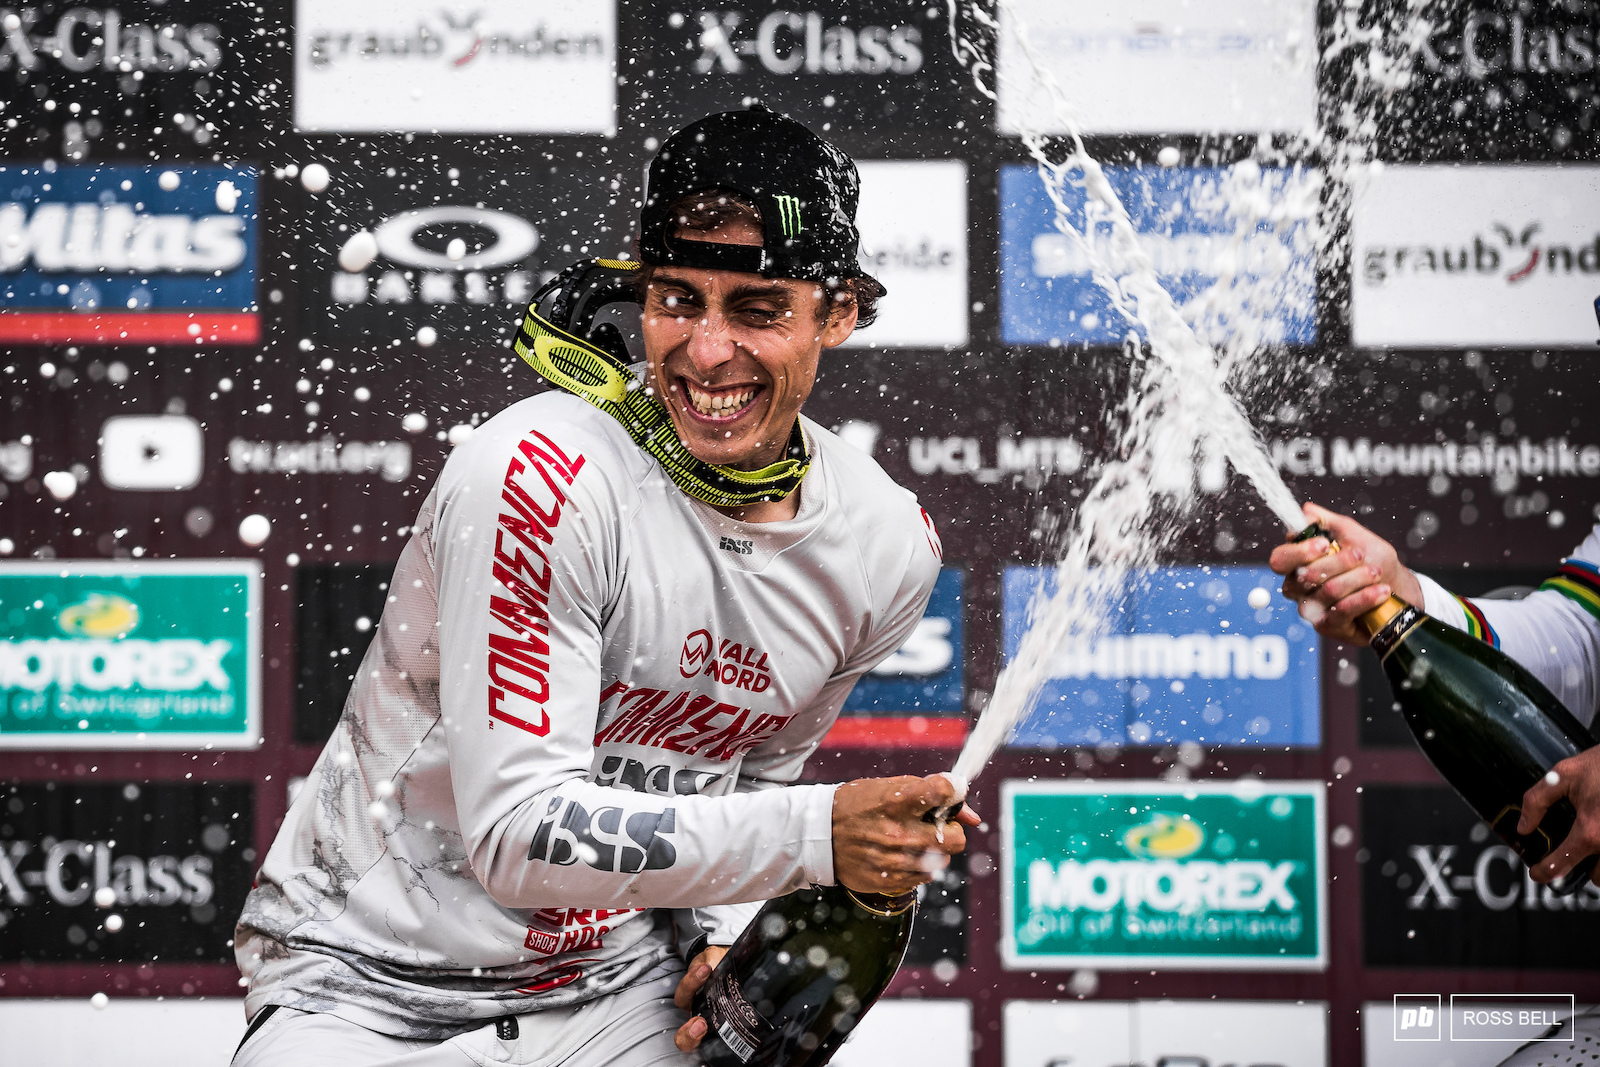 Third win of the season for Amaury Pierron as he keeps the overall dream alive.